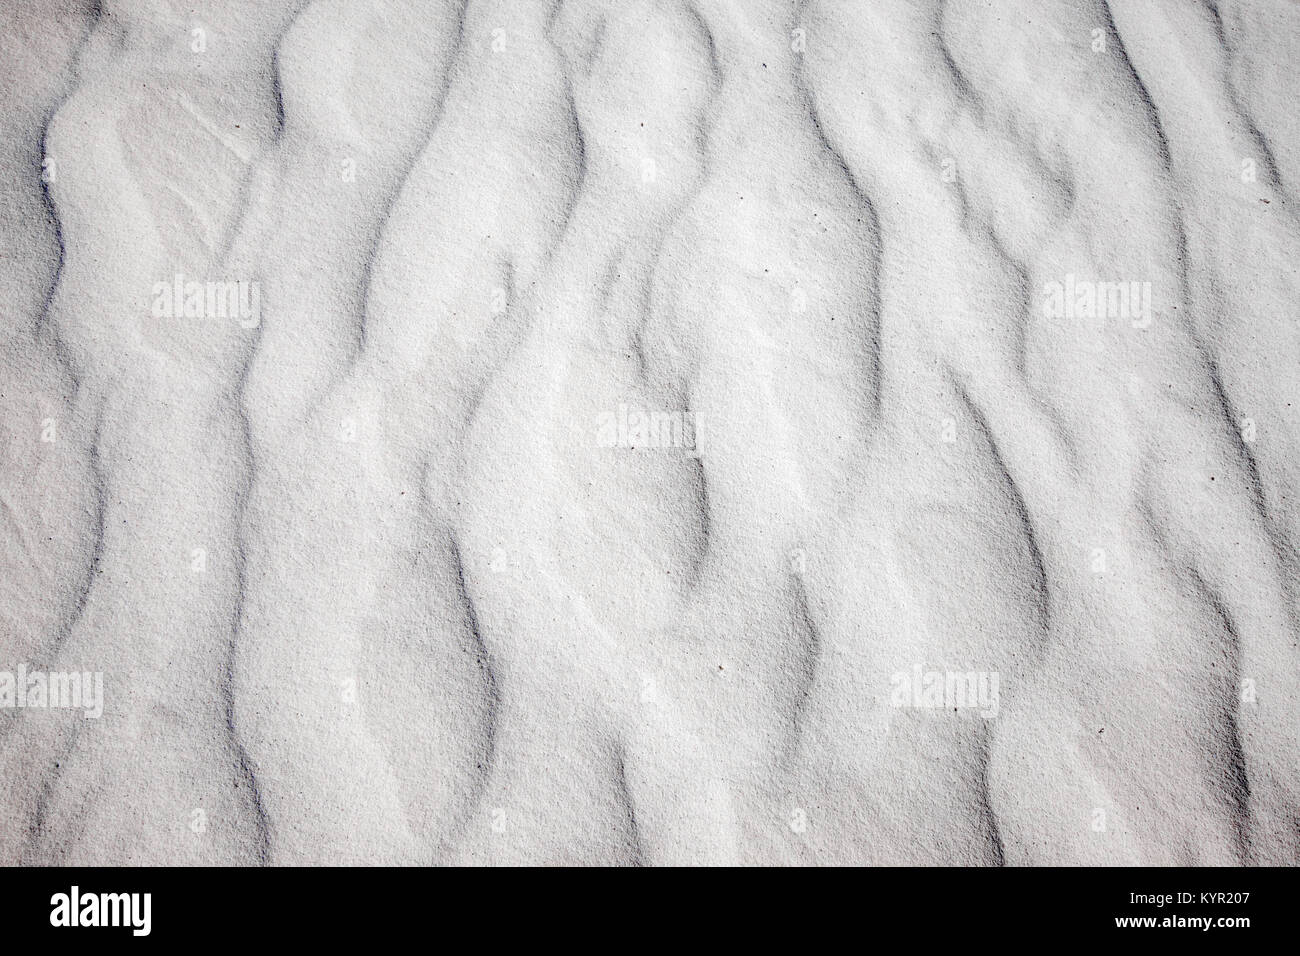 Close up of sand patterns, White Sands Dunes National Monument, New Mexico - Stock Image